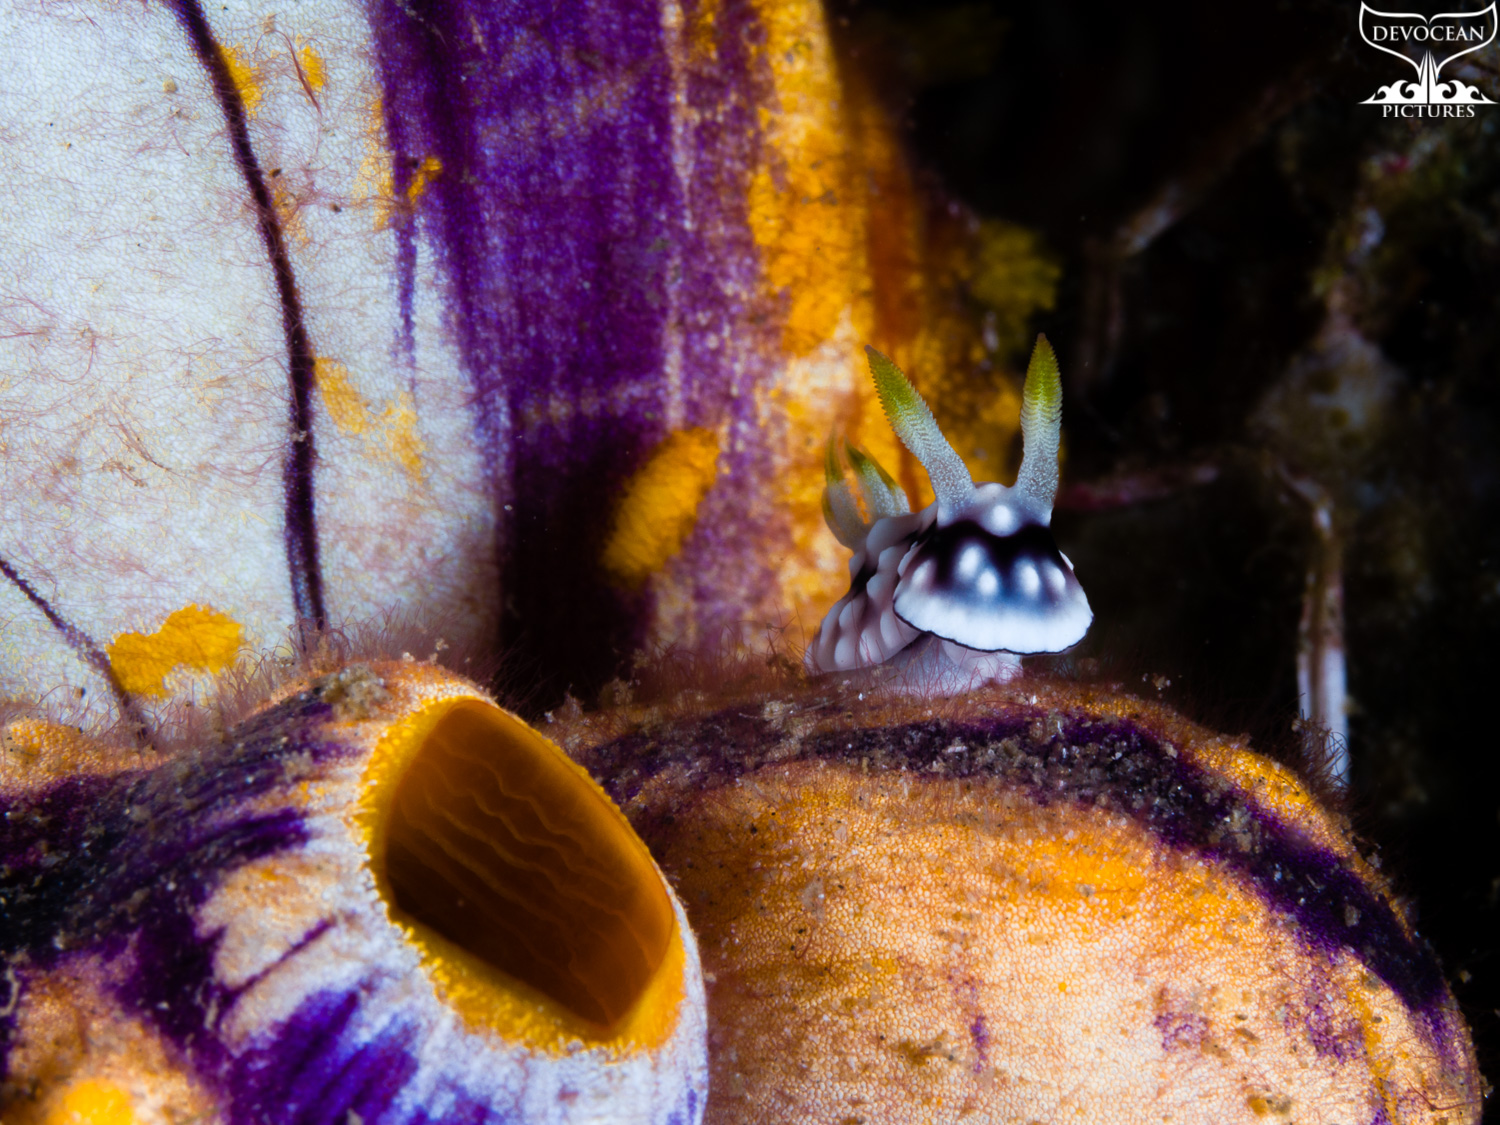 Underwater macro shot of Goniobranchus geometricus (black and white with little blue-grey and yellow tips of rhinophores and gills) lifting its head while sitting on a solitary tunicate in orange, purple and white.